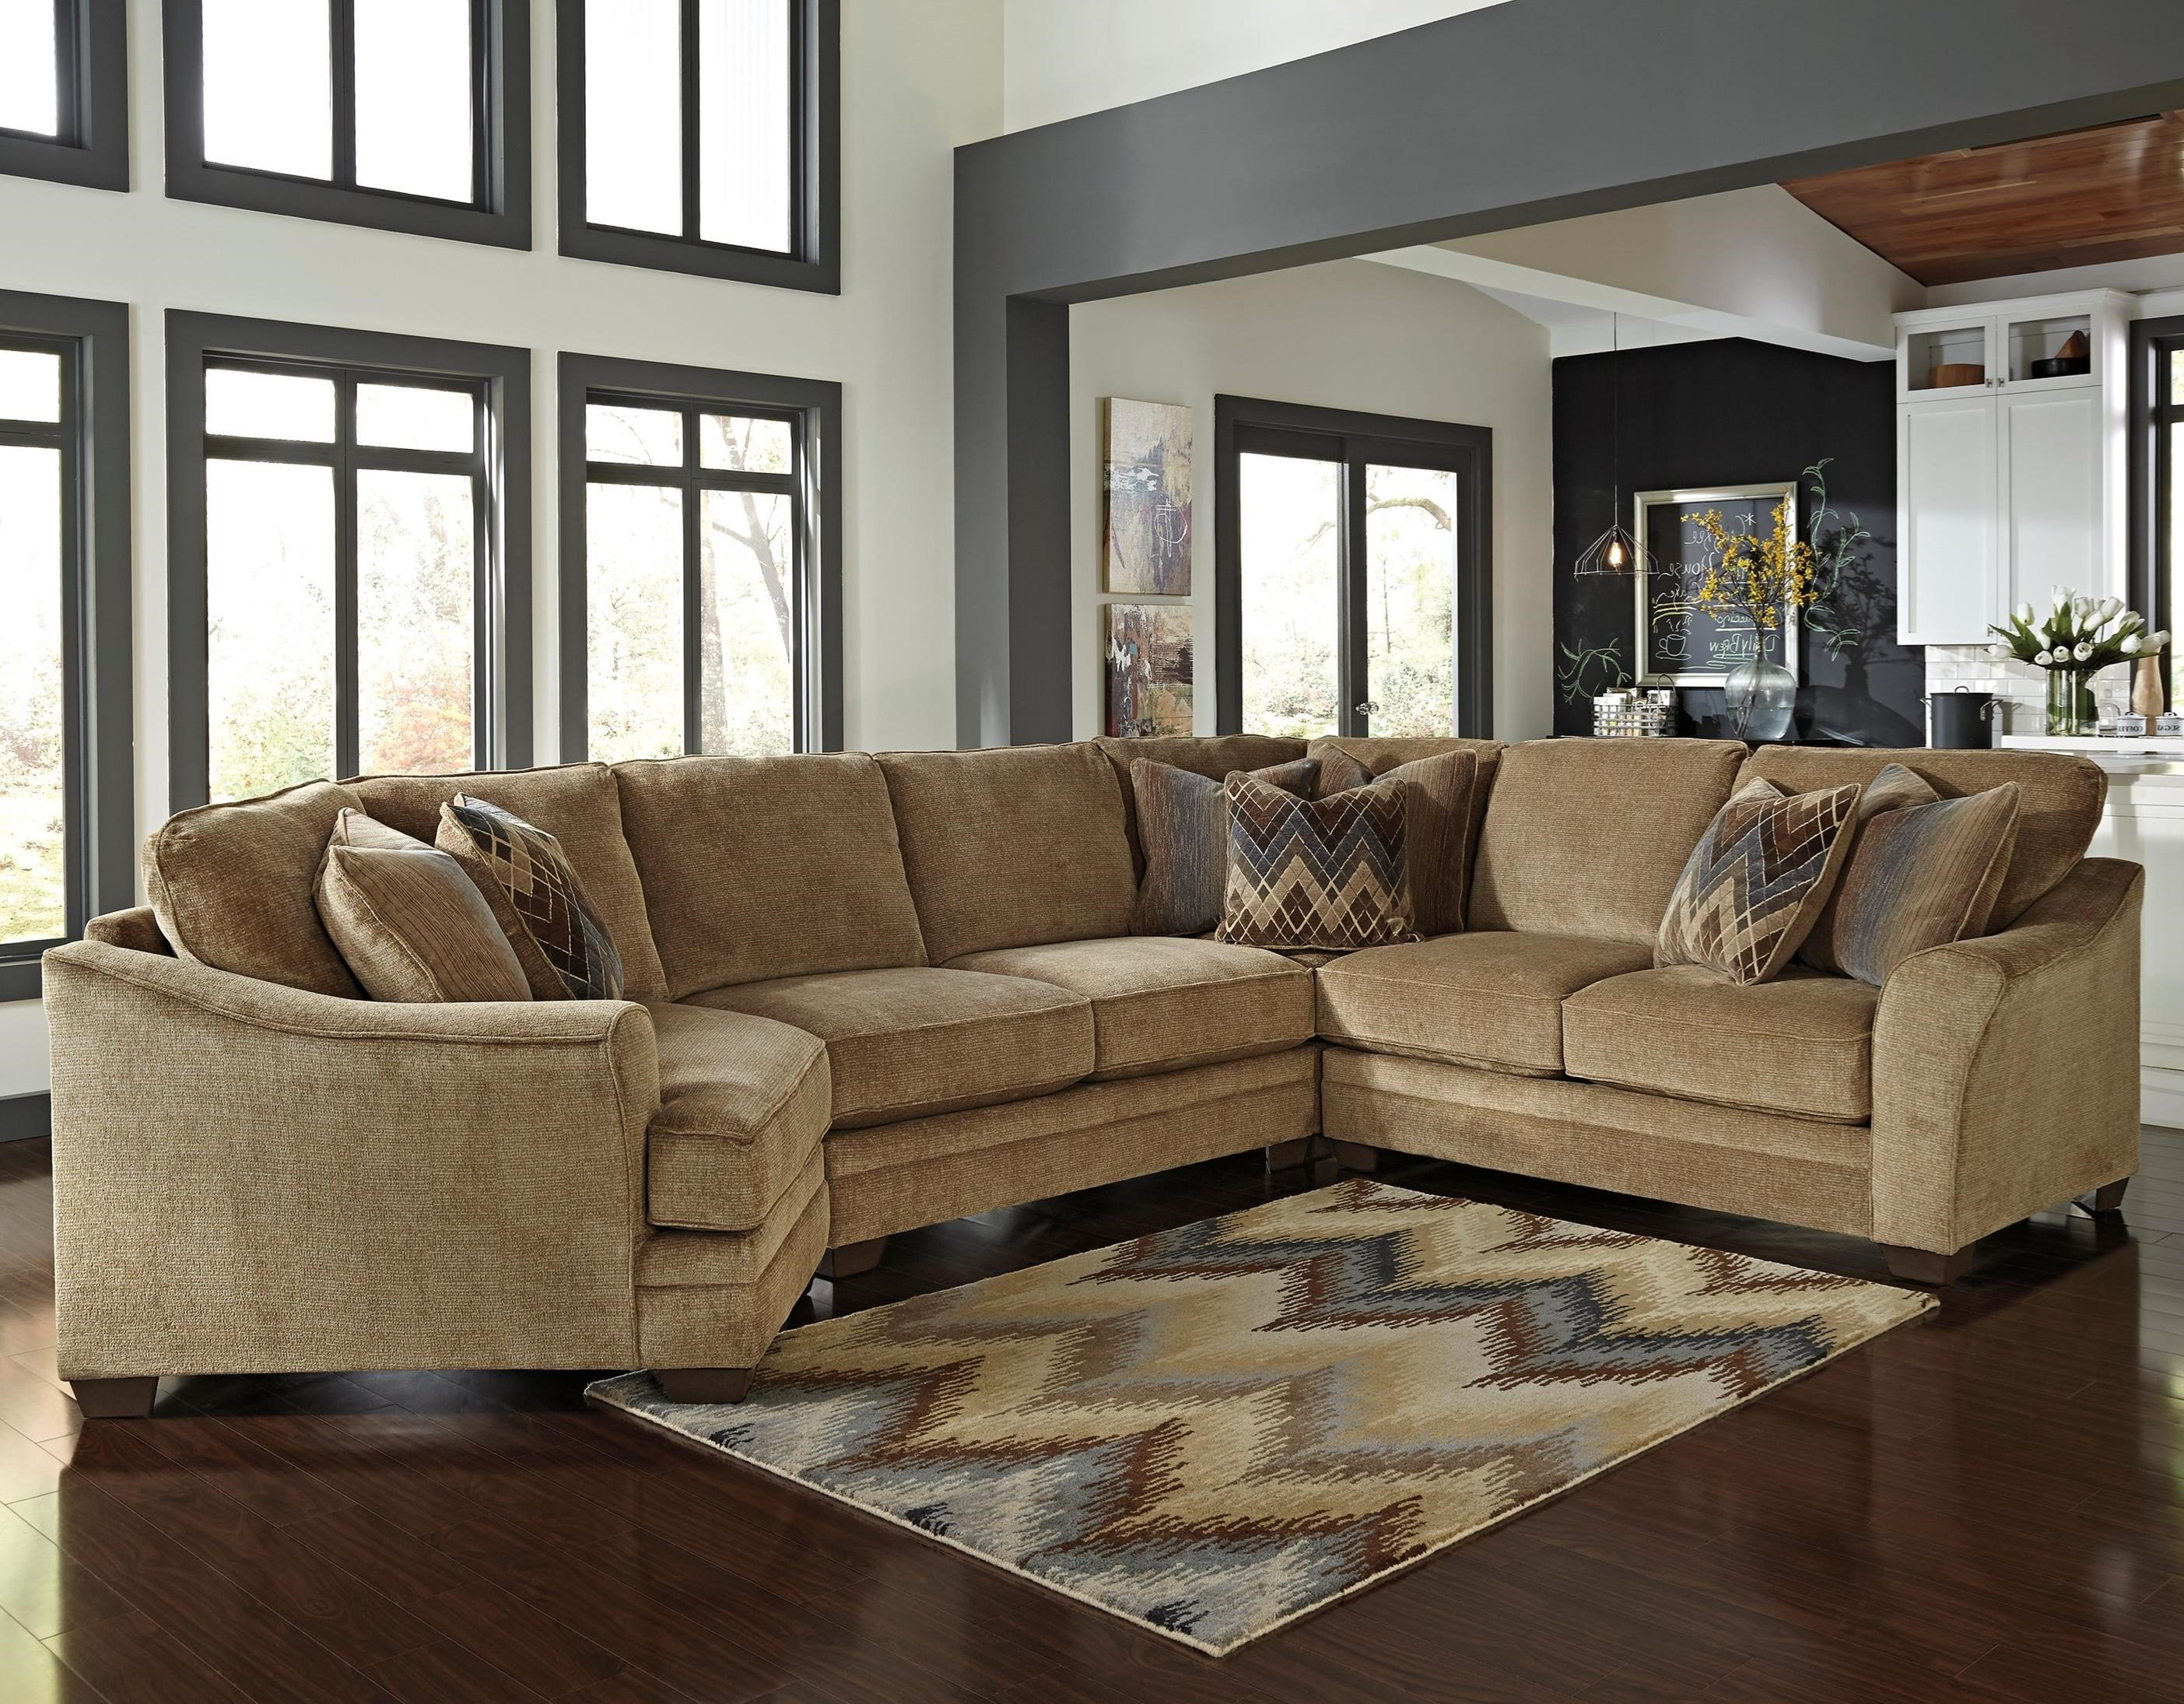 Ashley/Benchcraft Lonsdale 4-Piece Sectional with Left Cuddler - Item Number: 9211176+34+77+56